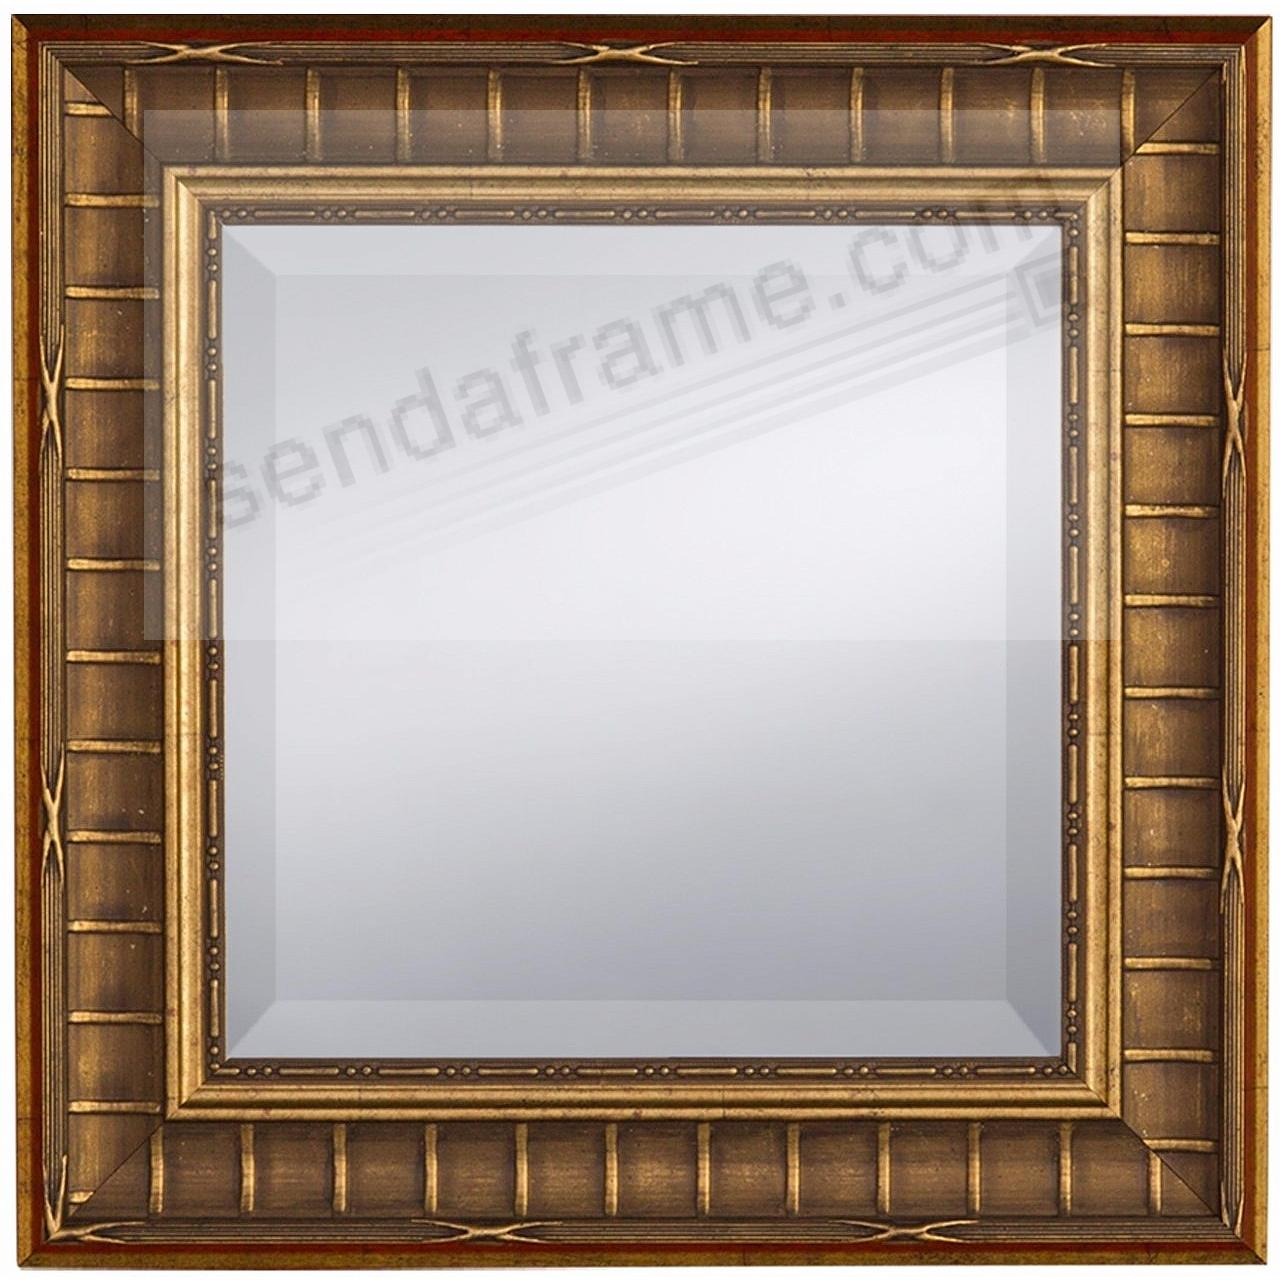 Gold Finish BAMBOO Pattern Mirror 17x17 by Prinz® - Picture Frames ...